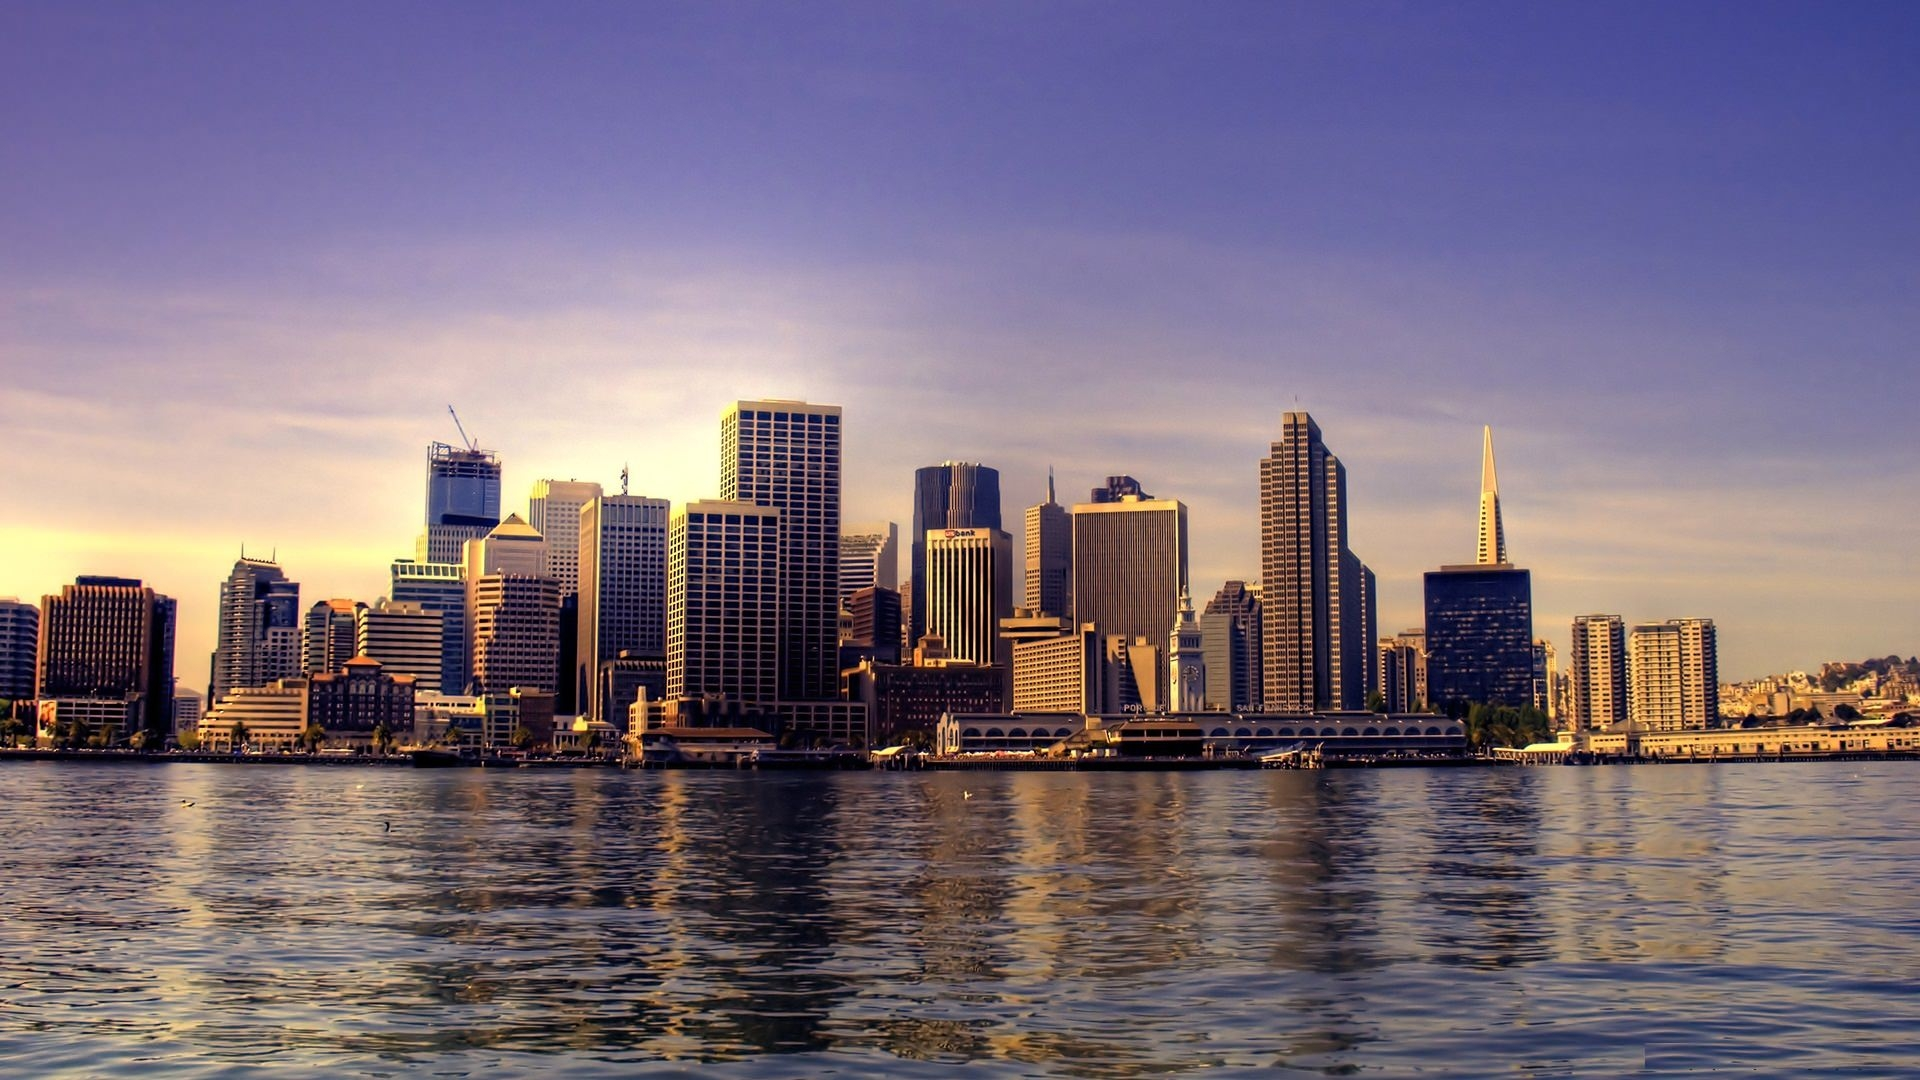 cityscape-widescreen-high-definition-wallpaper